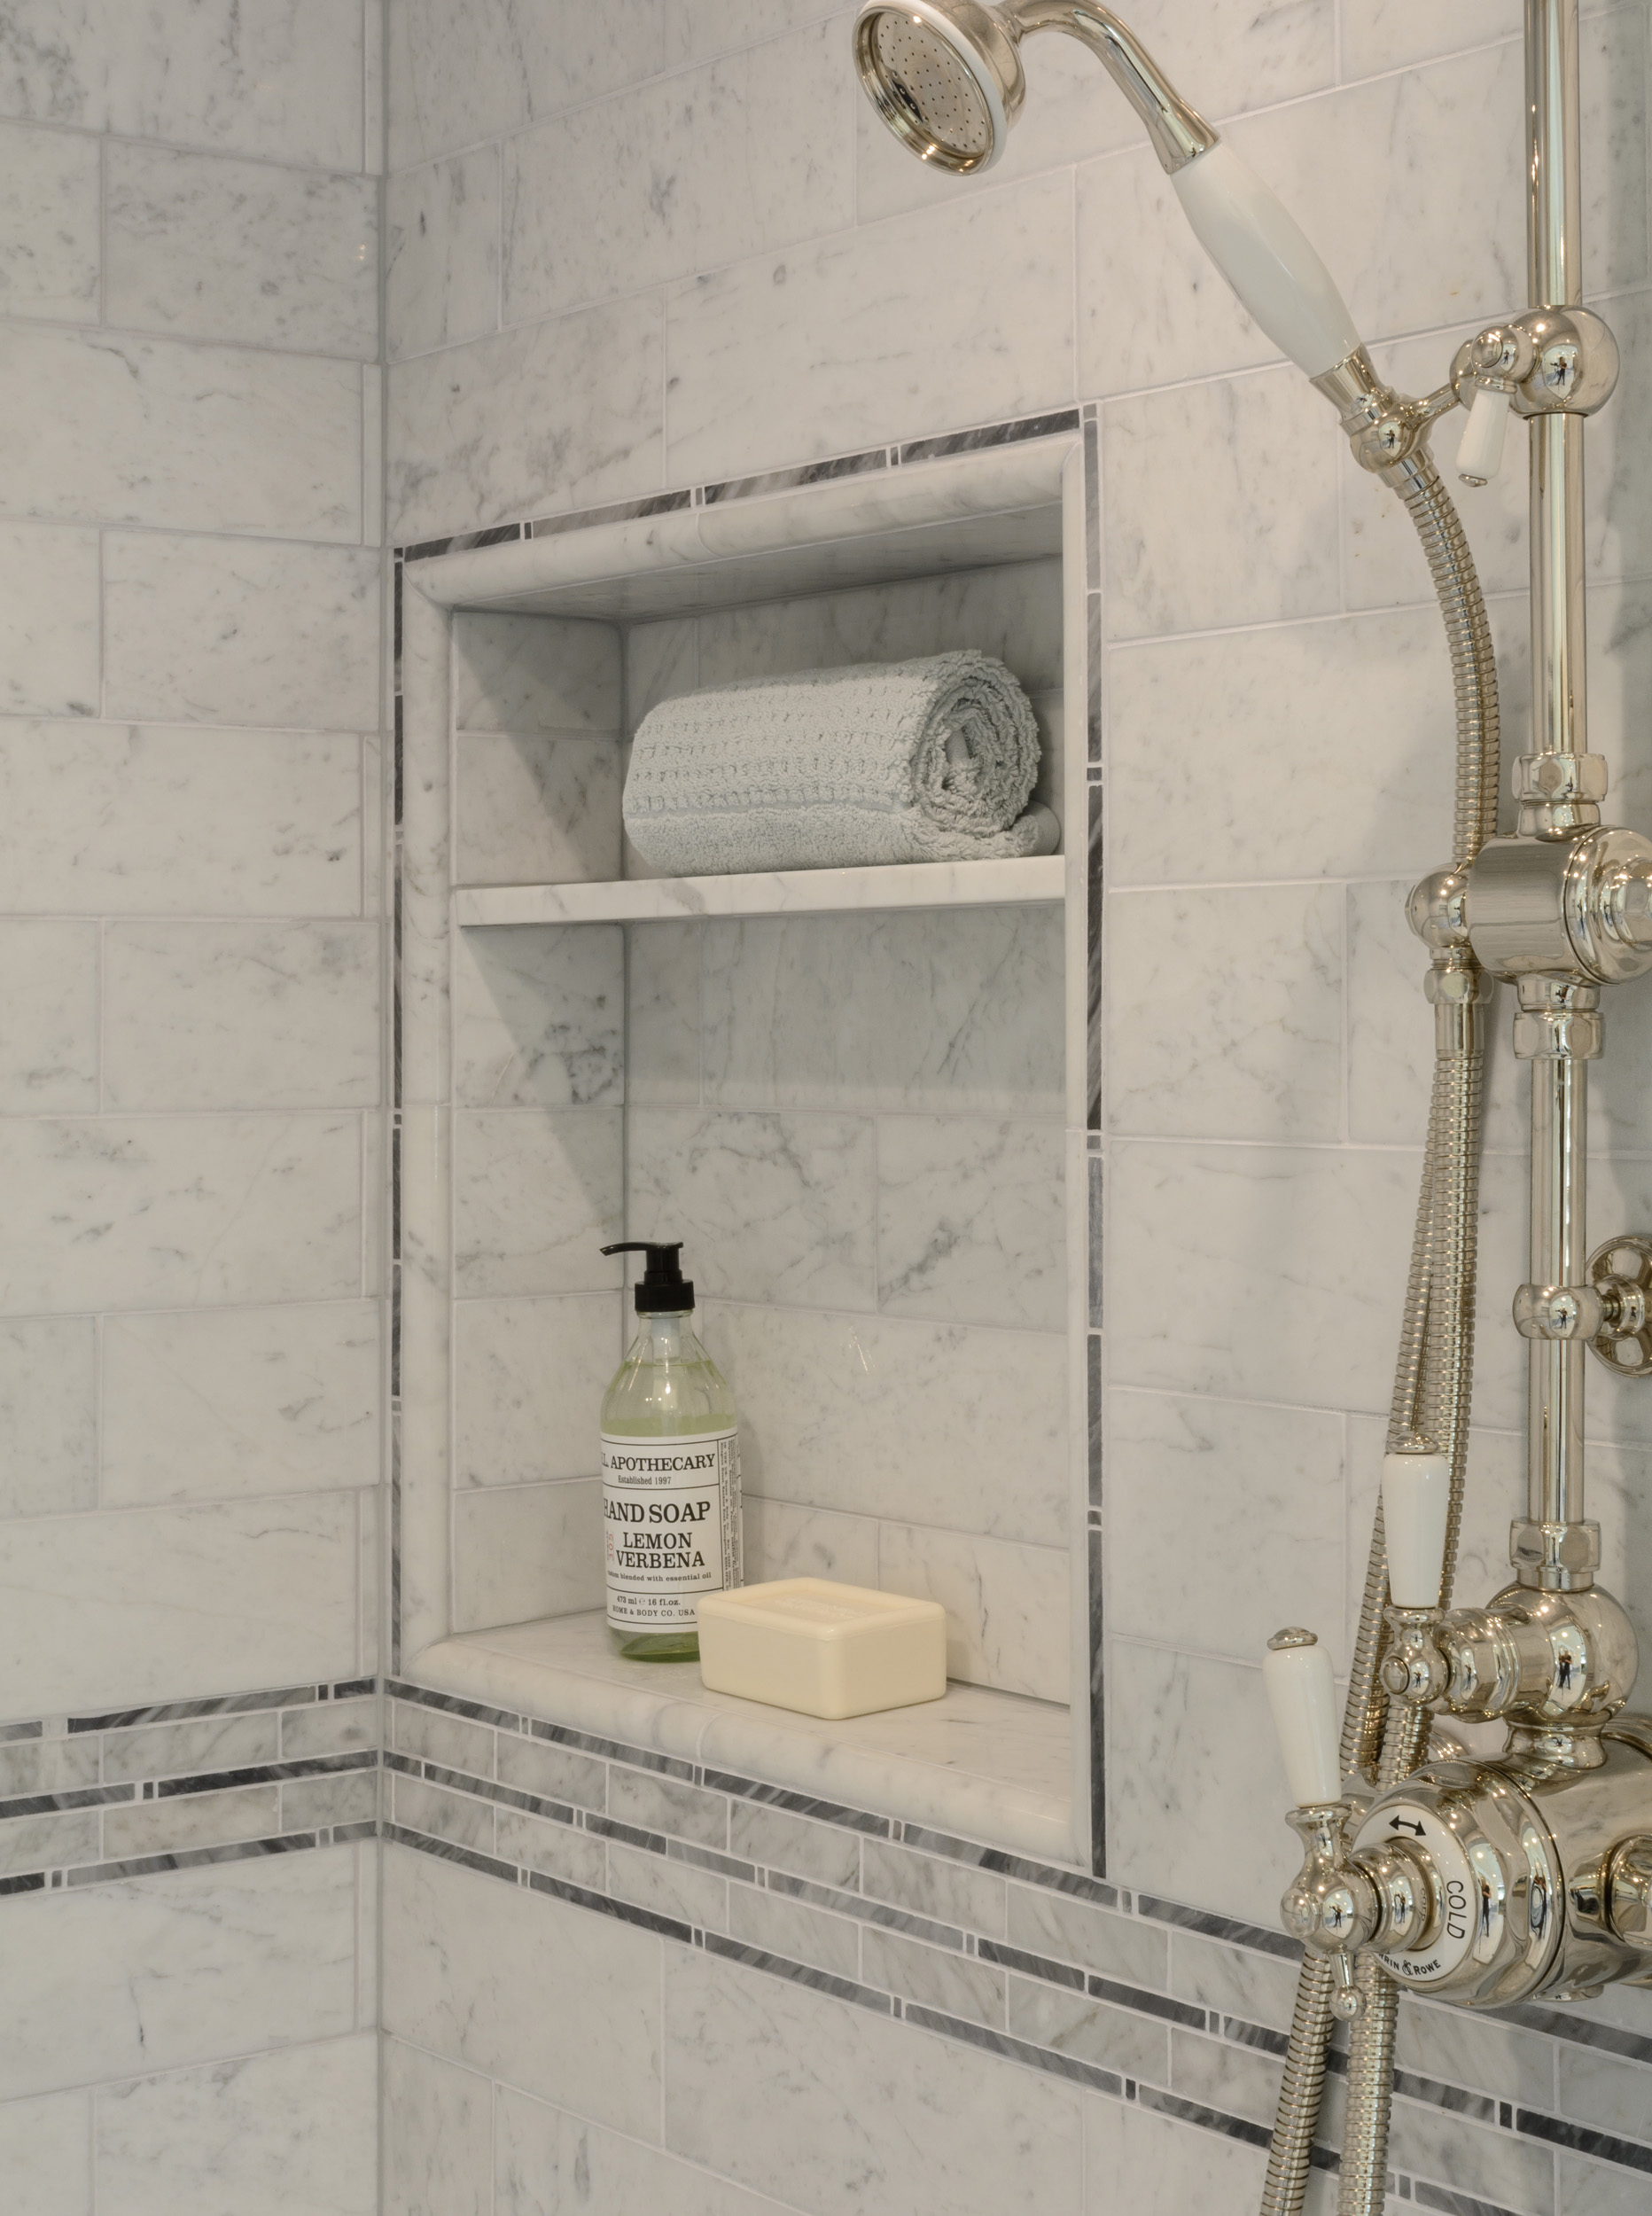 Ultimate luxury: shower niche in carrera marble and traditional handheld shower system